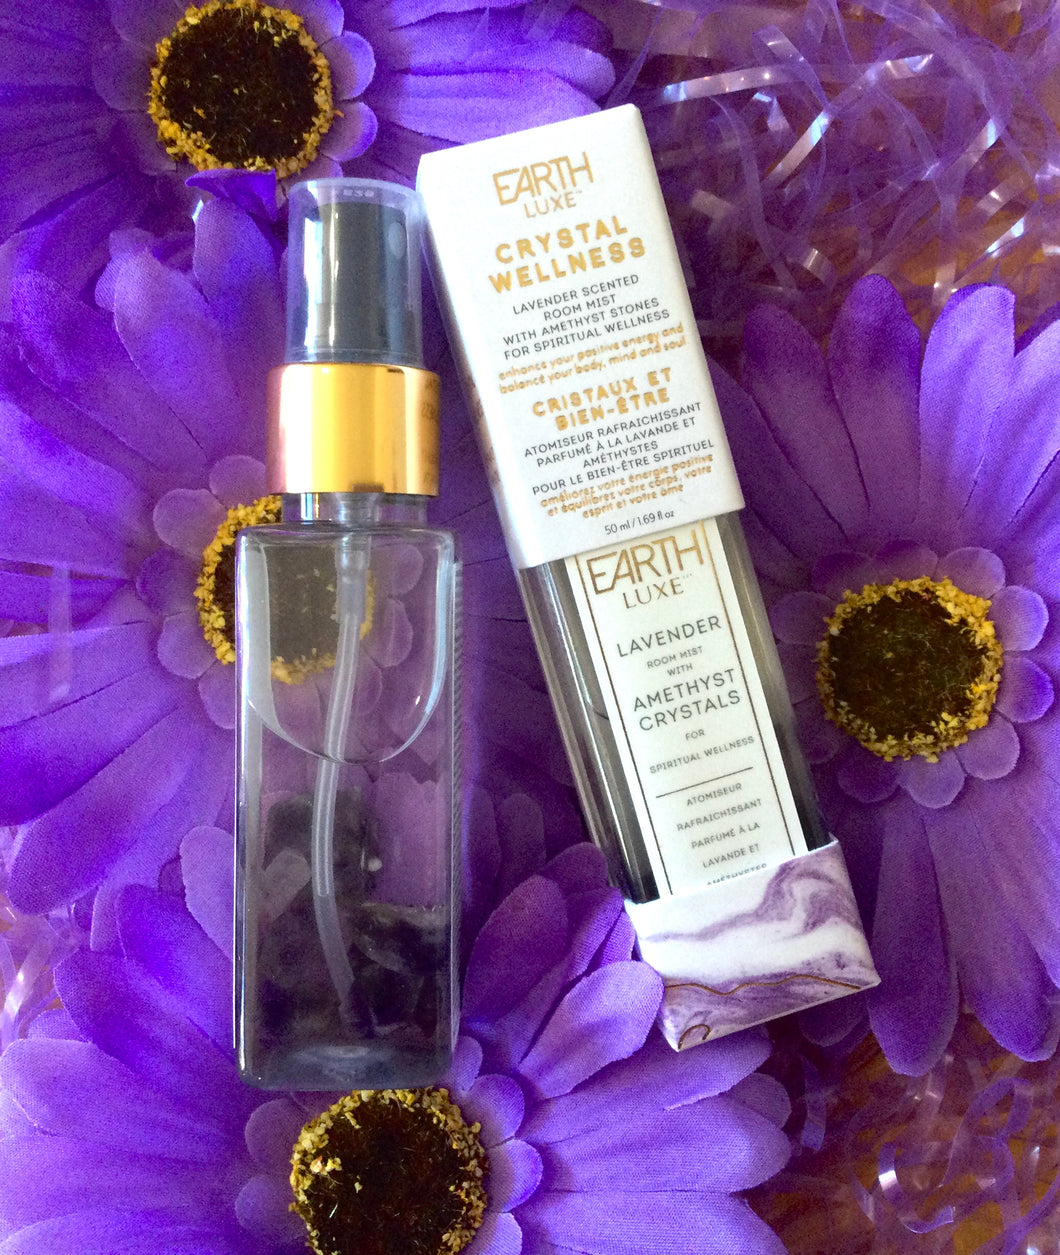 Bottle of Earth Lux Crystal Room Spray with Amethyst Crystals In Bottle Displayed on Purple Flowers.